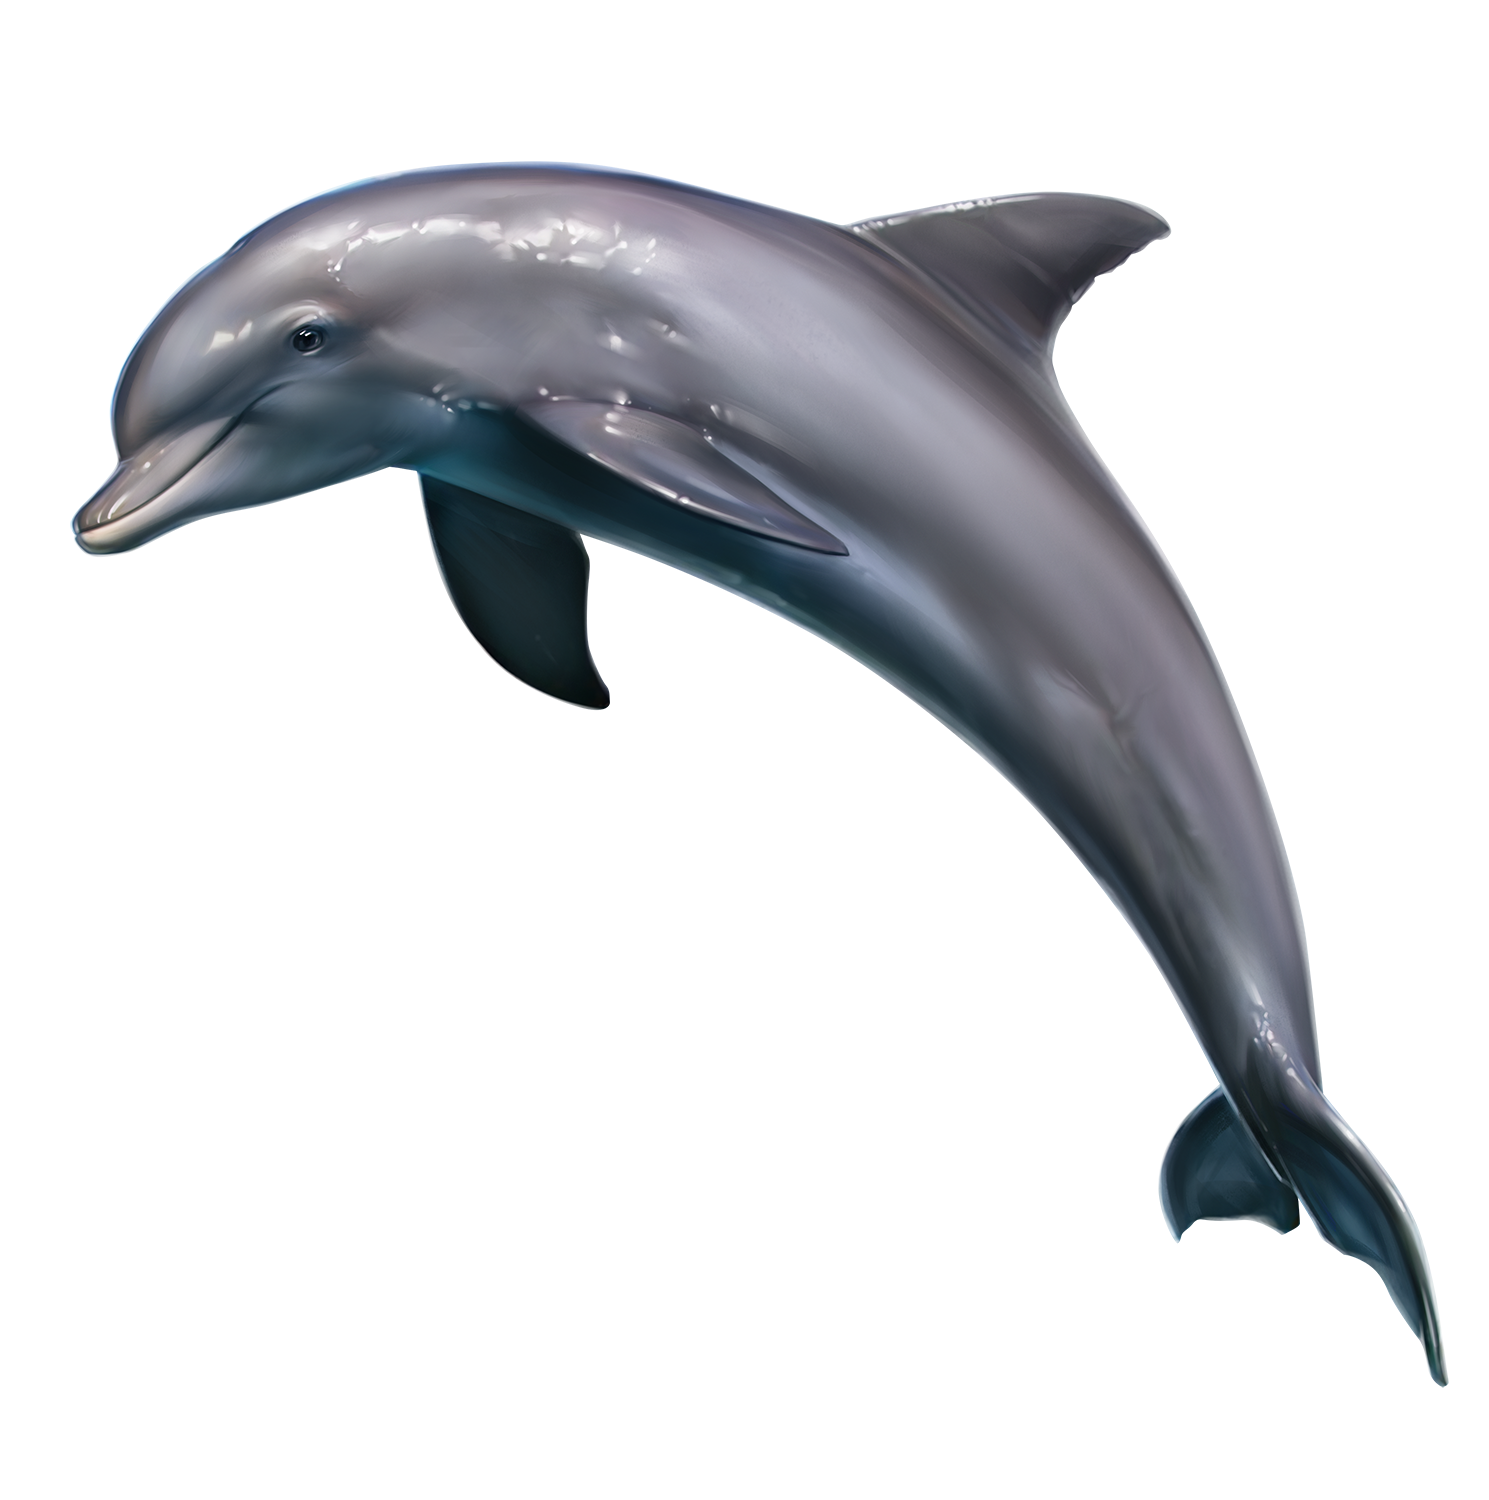 Clipart dolphin realistic. Pin by quibbles chelle